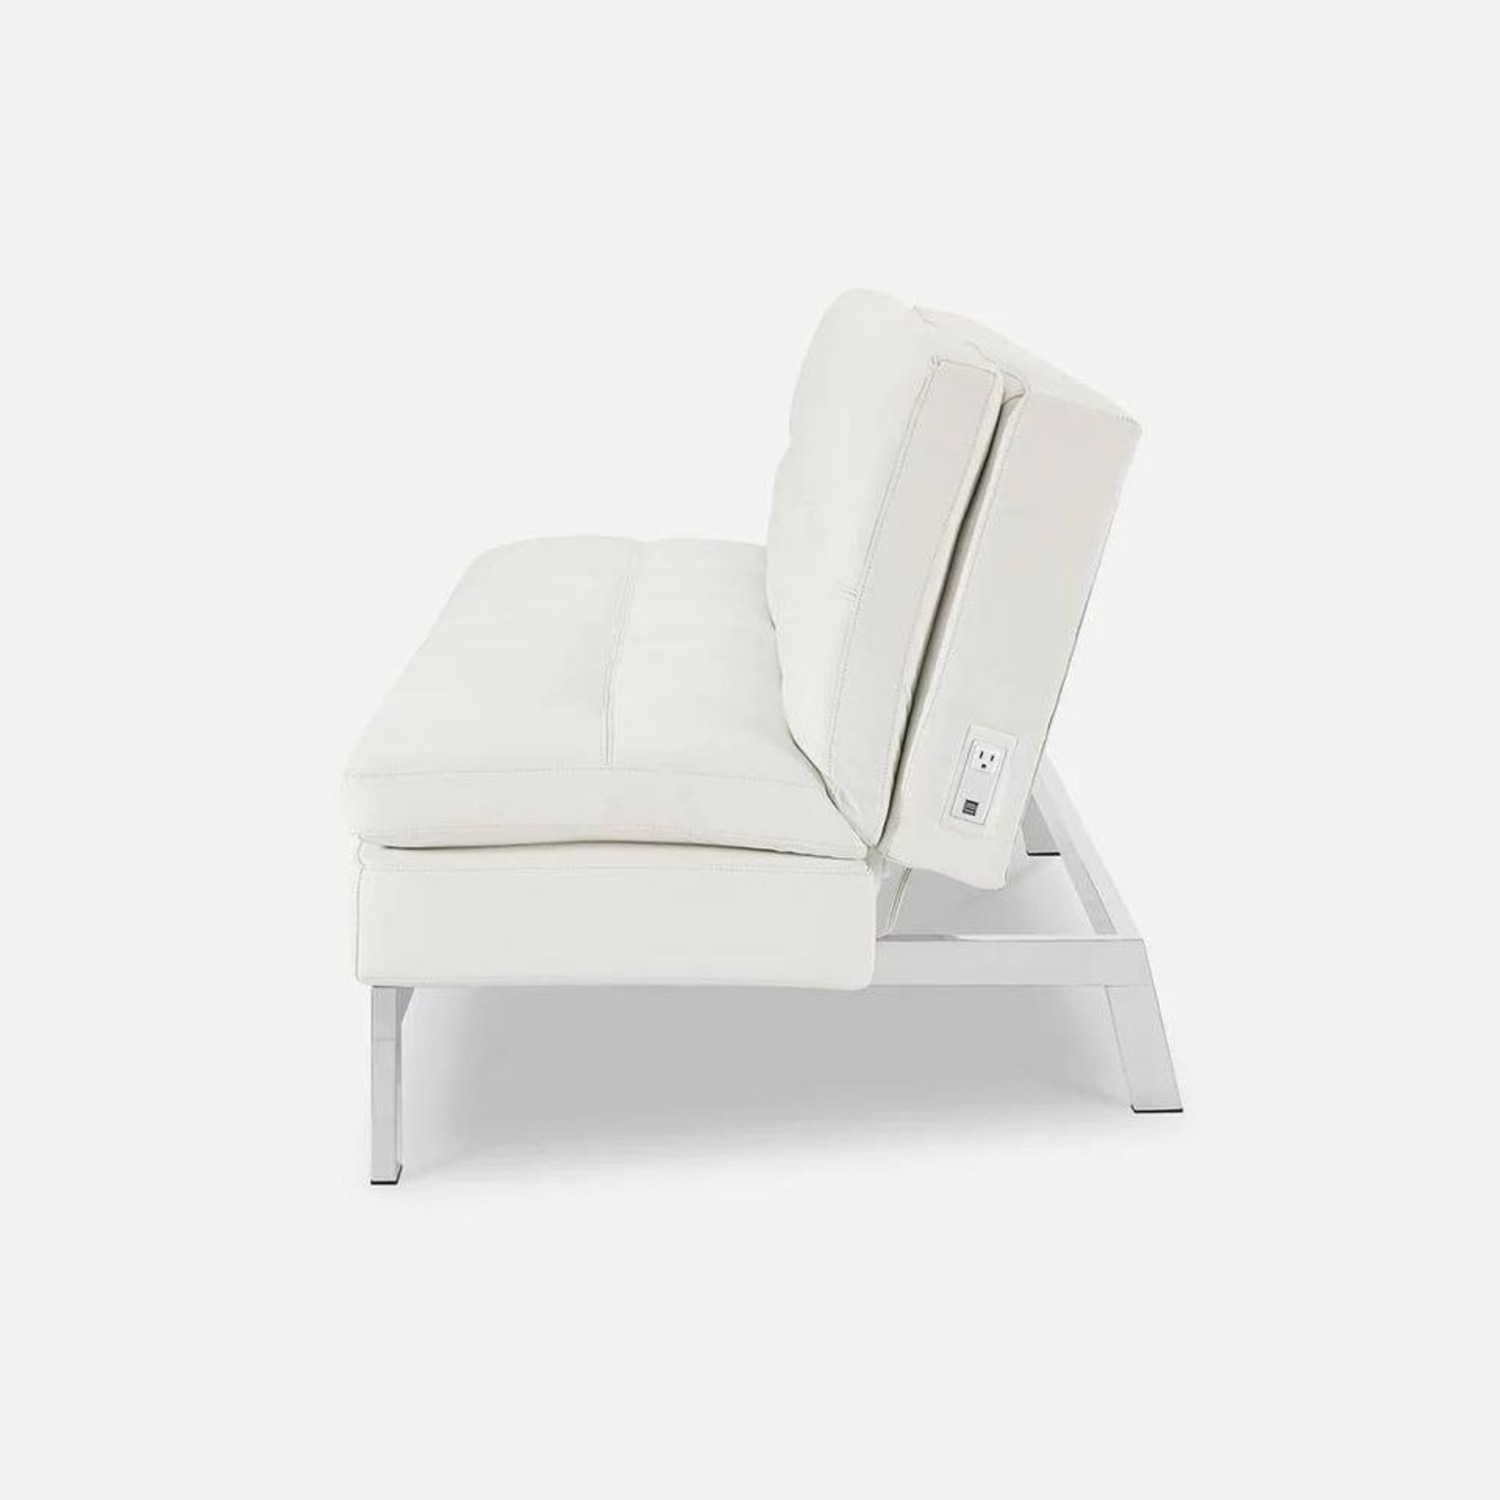 Coddle Toggle Convertible Couch Perl/White Leather - image-2